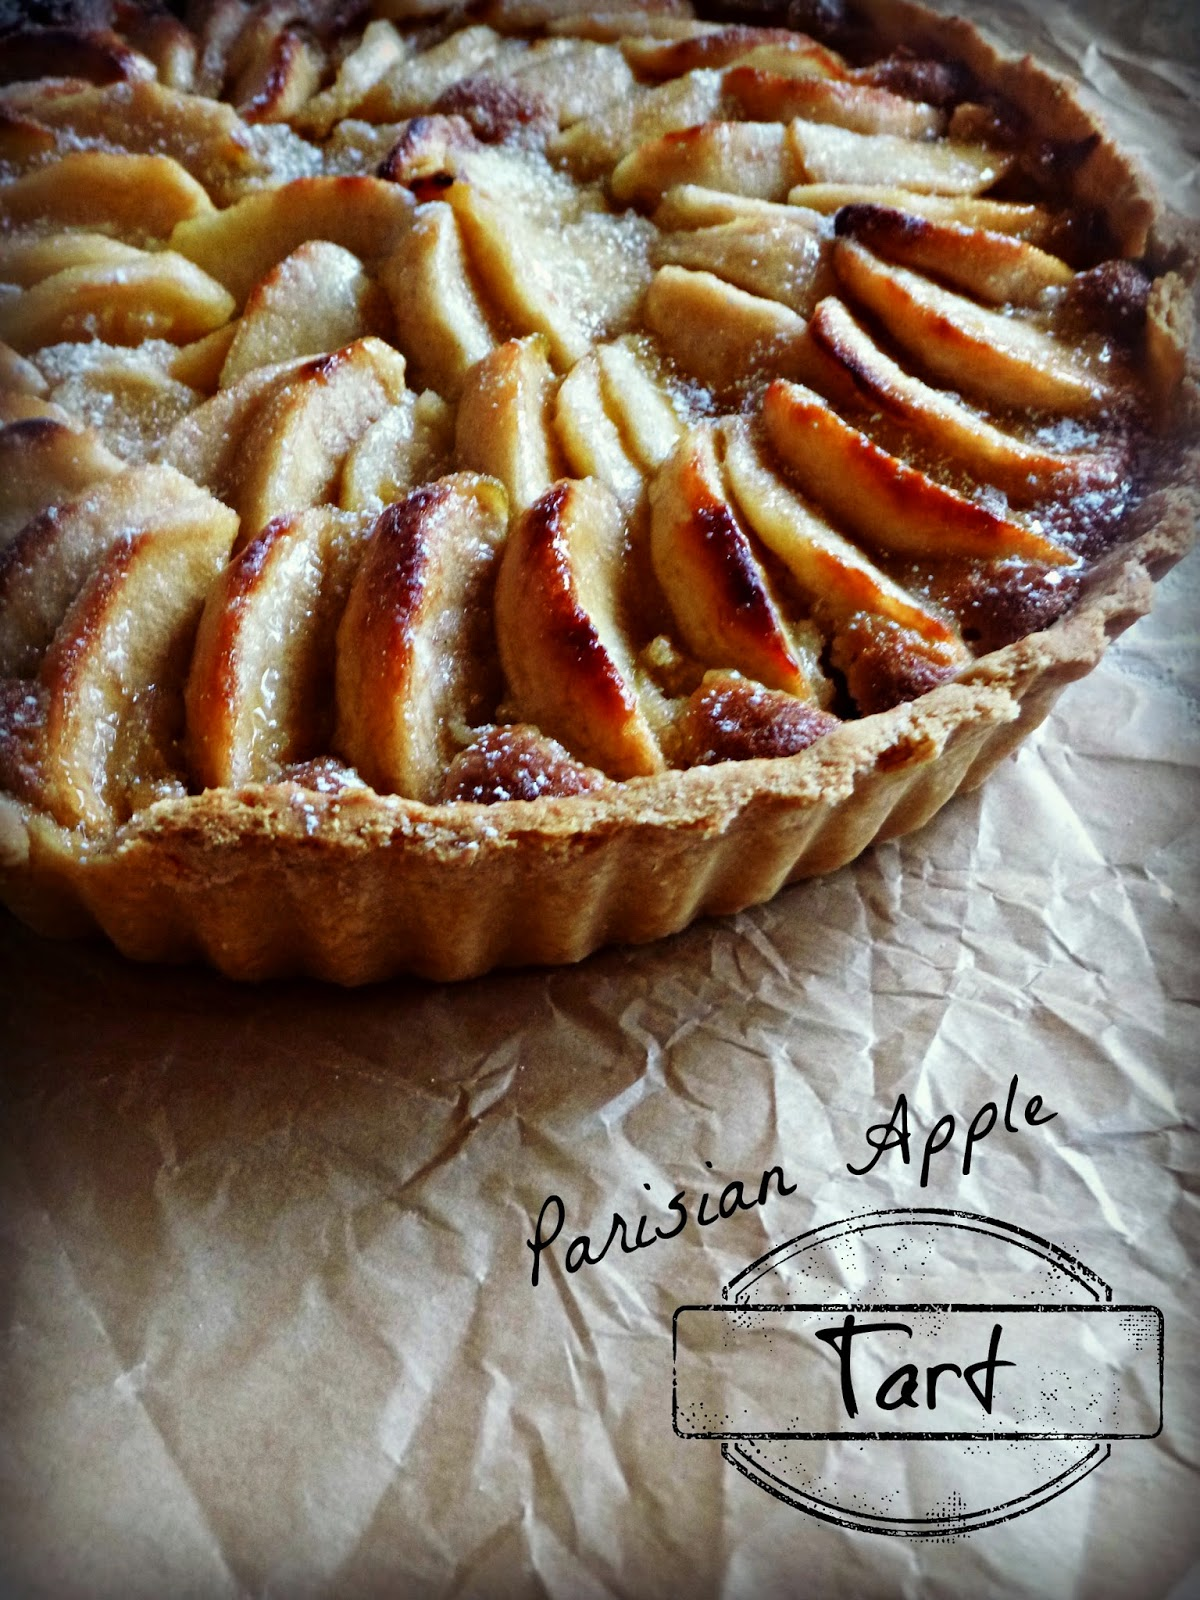 The Best Damn Apple Tart You'll Ever Make pictures